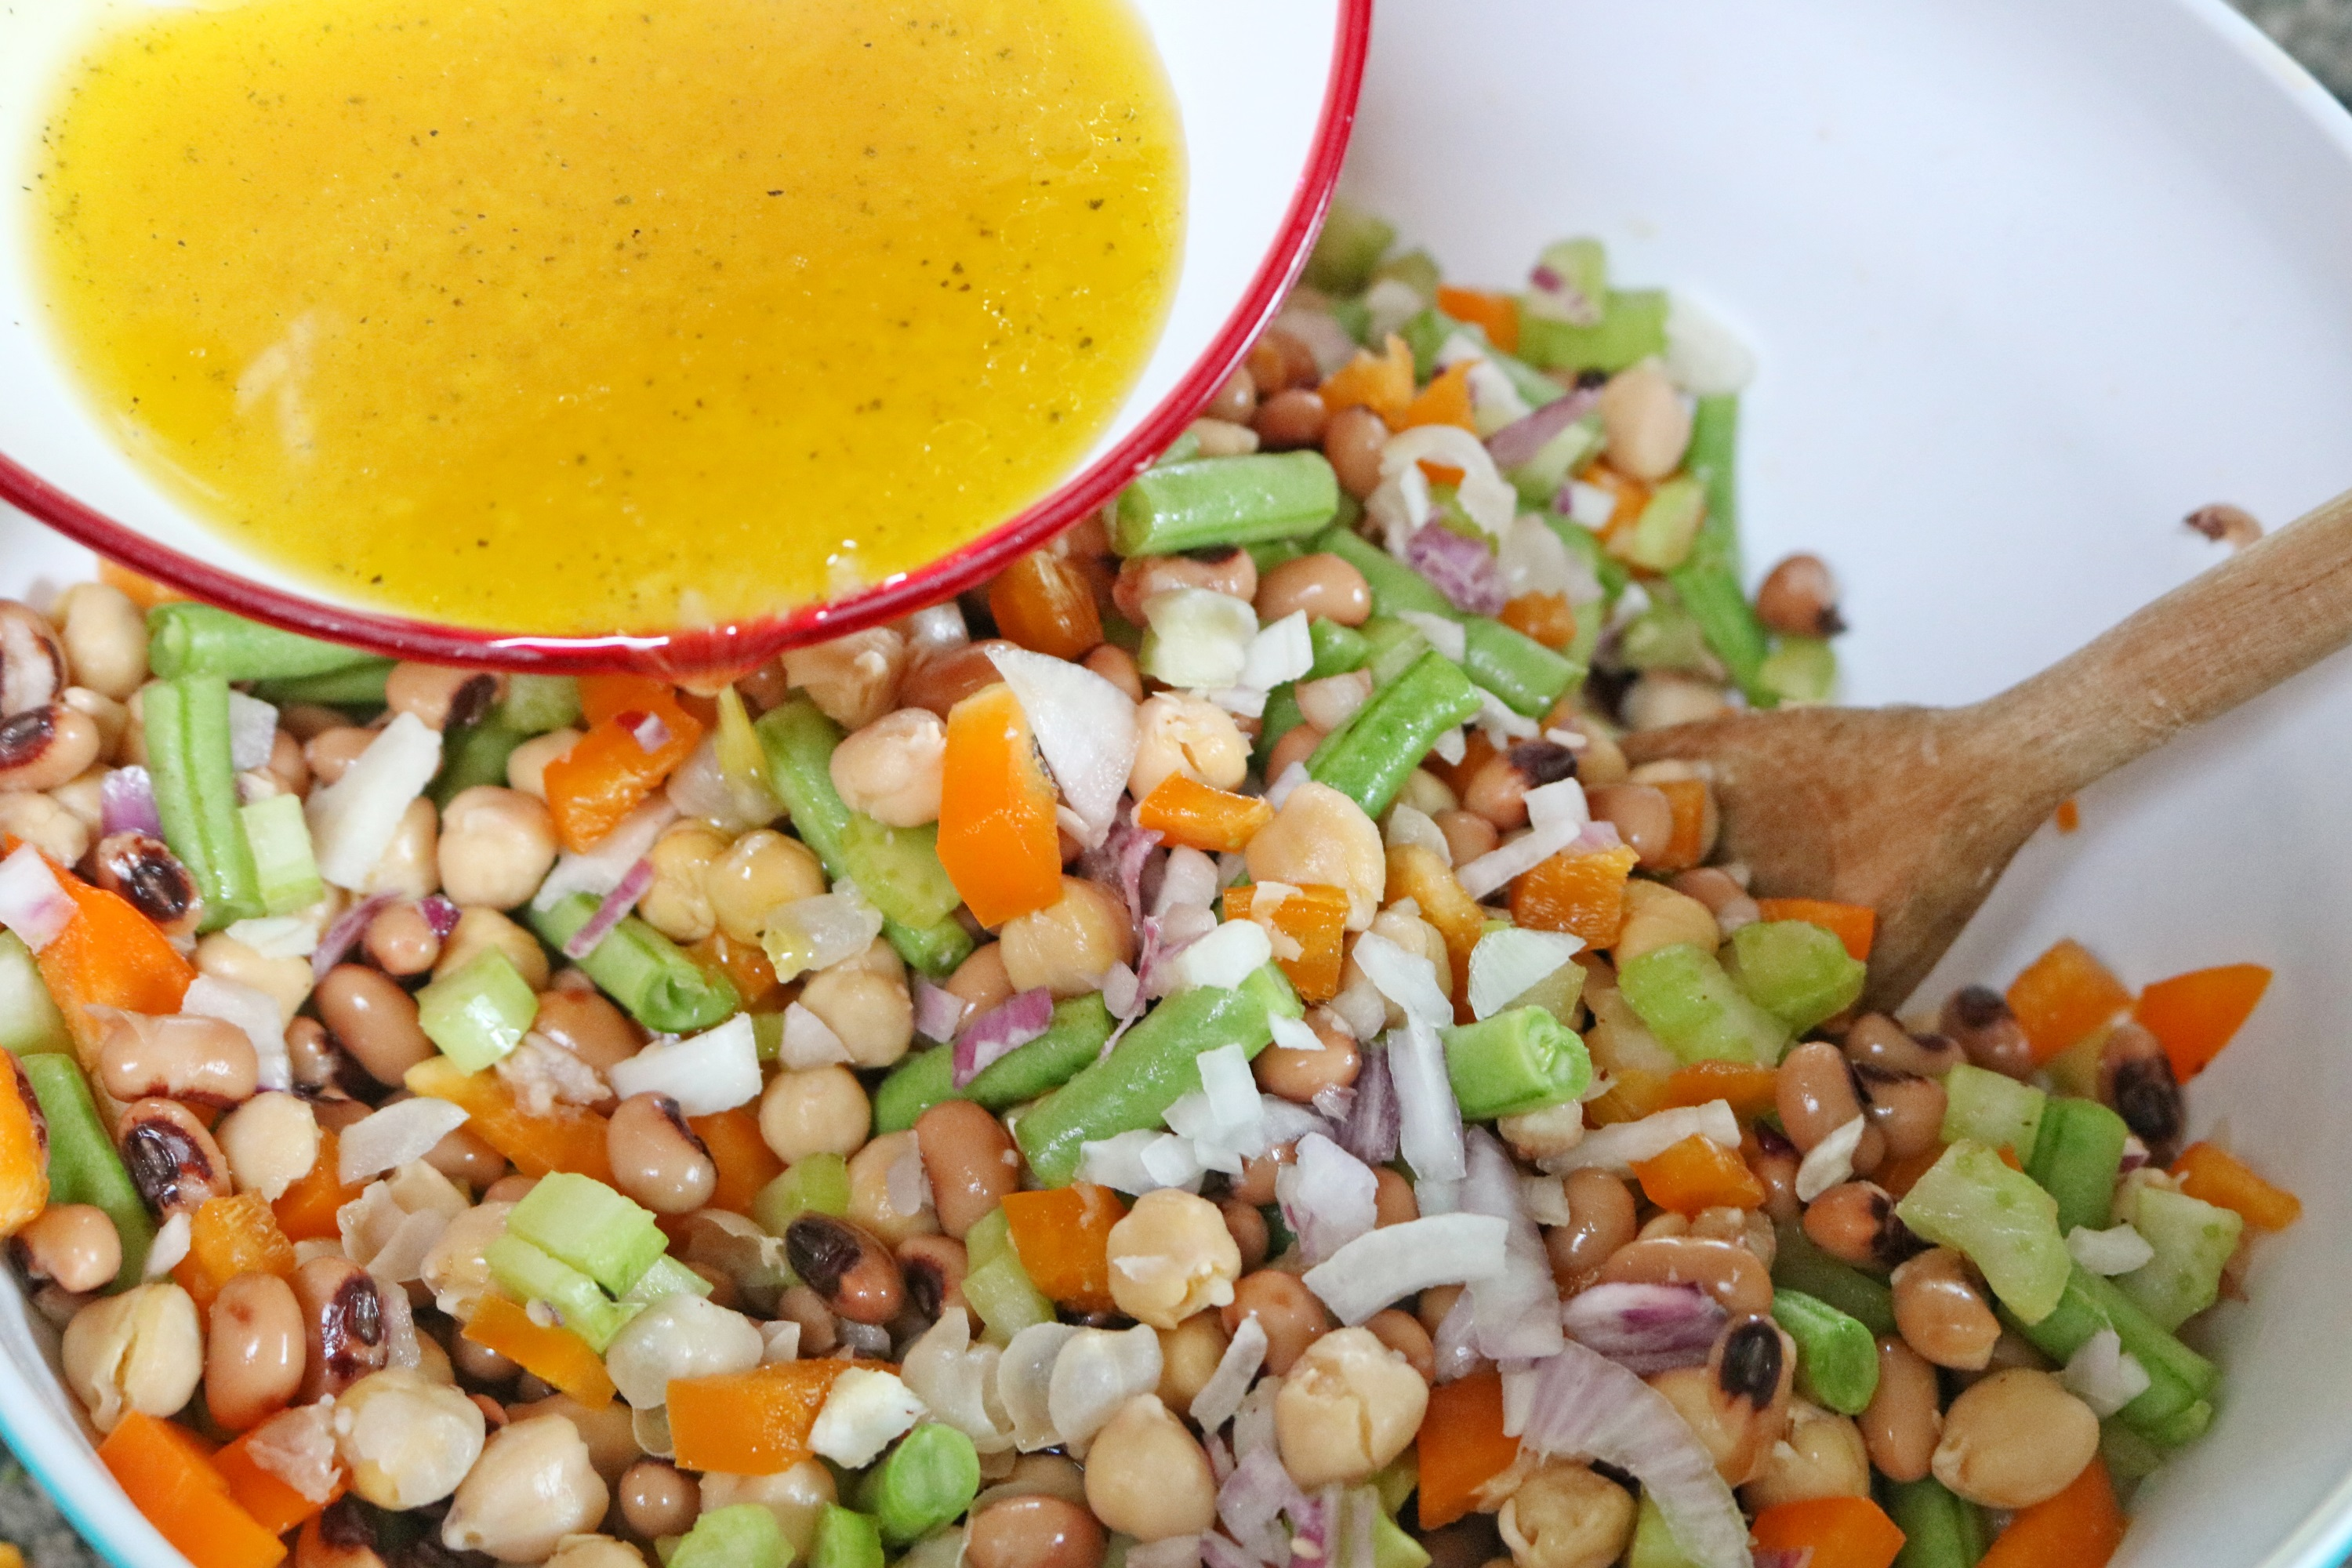 Pour the dressing over the bean salad and gently stir everything together until it's combined.